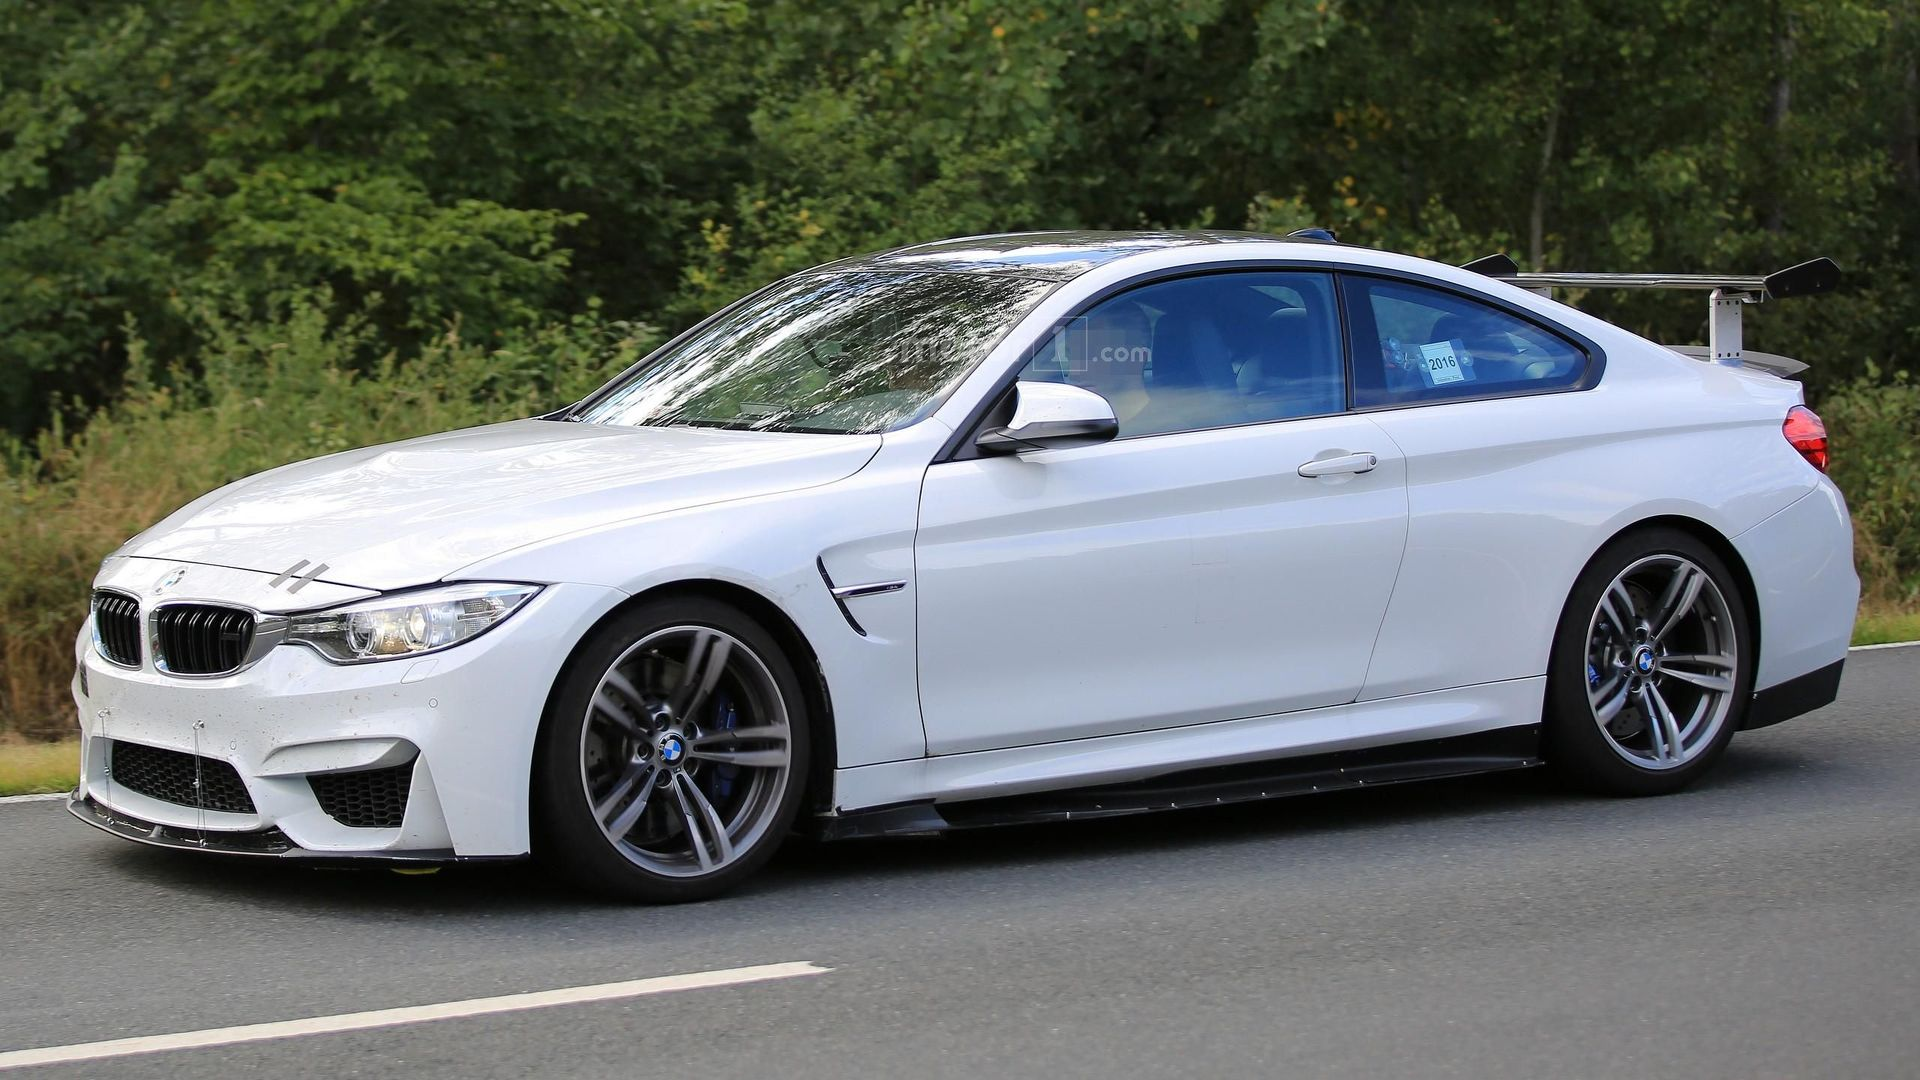 What's the deal with this mysterious BMW M4 prototype?